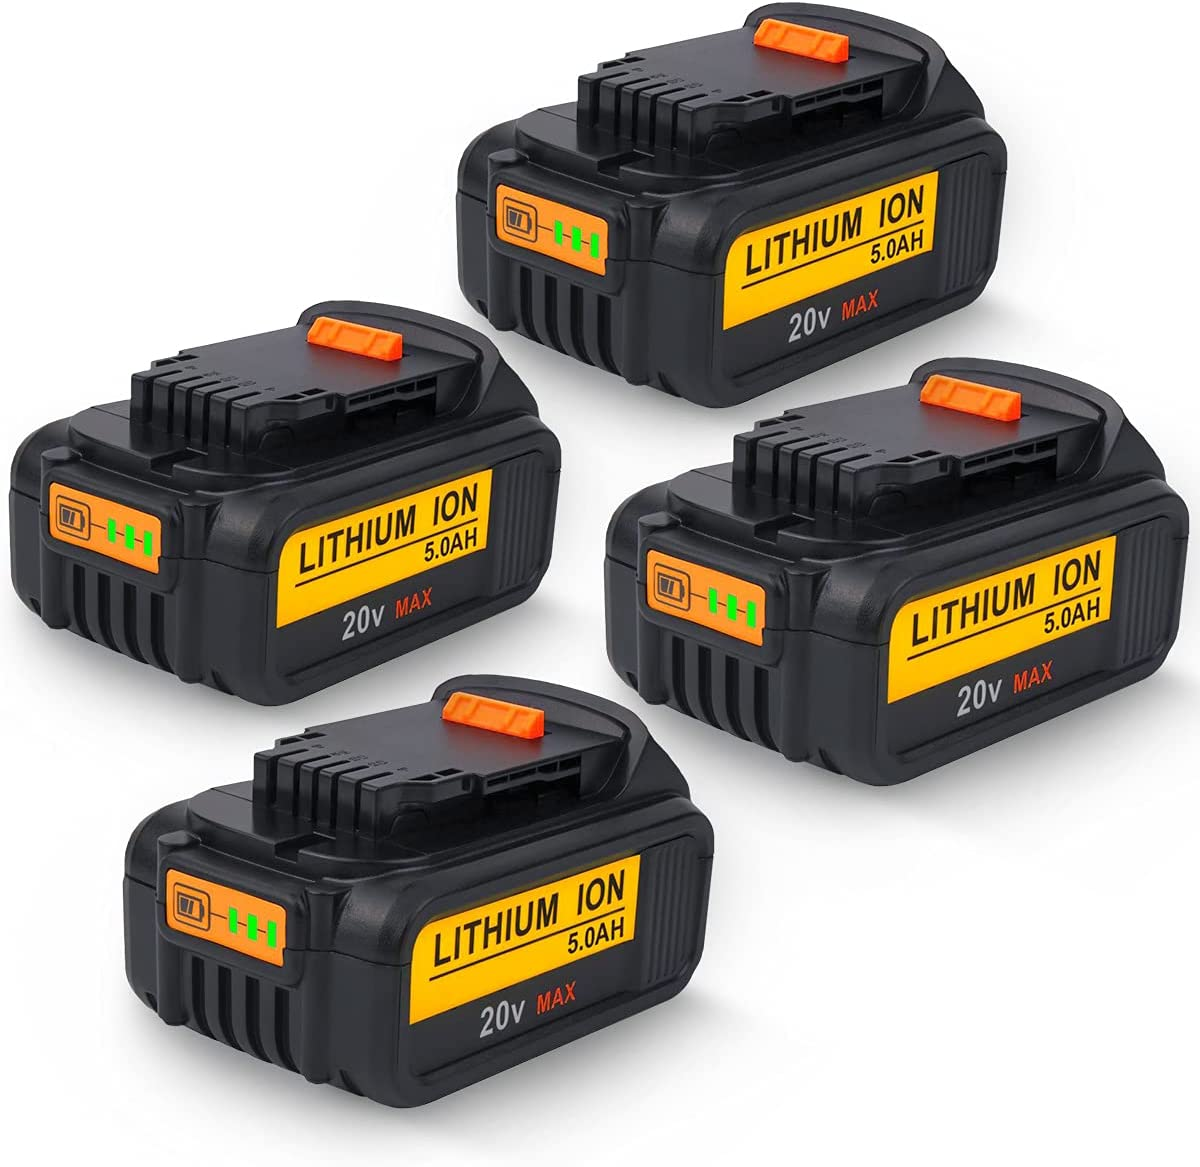 4Pack 5.0Ah DCB205 DCB204 Battery Replacement Bat Free Shipping New for Dewalt OFFicial store 20V